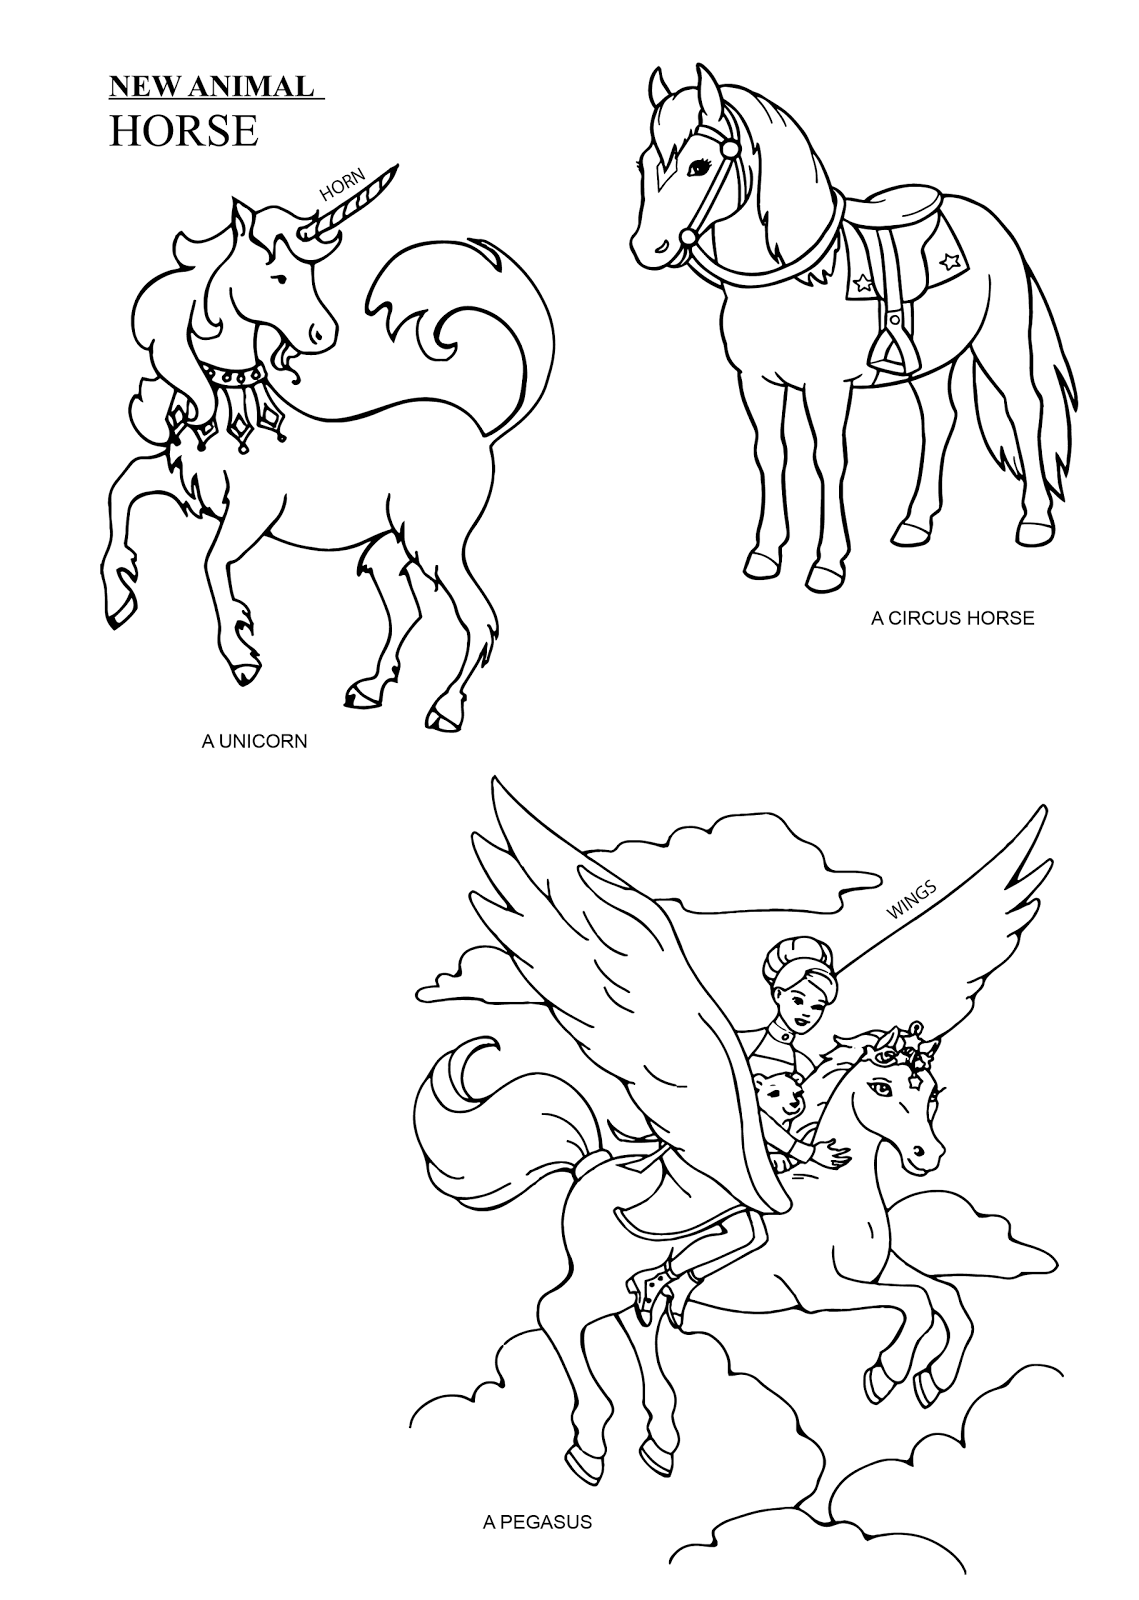 horse with wings coloring page صفحات تلوين اليونان صفحة تلوين بيغاسوس الحصان المجنح horse page coloring with wings